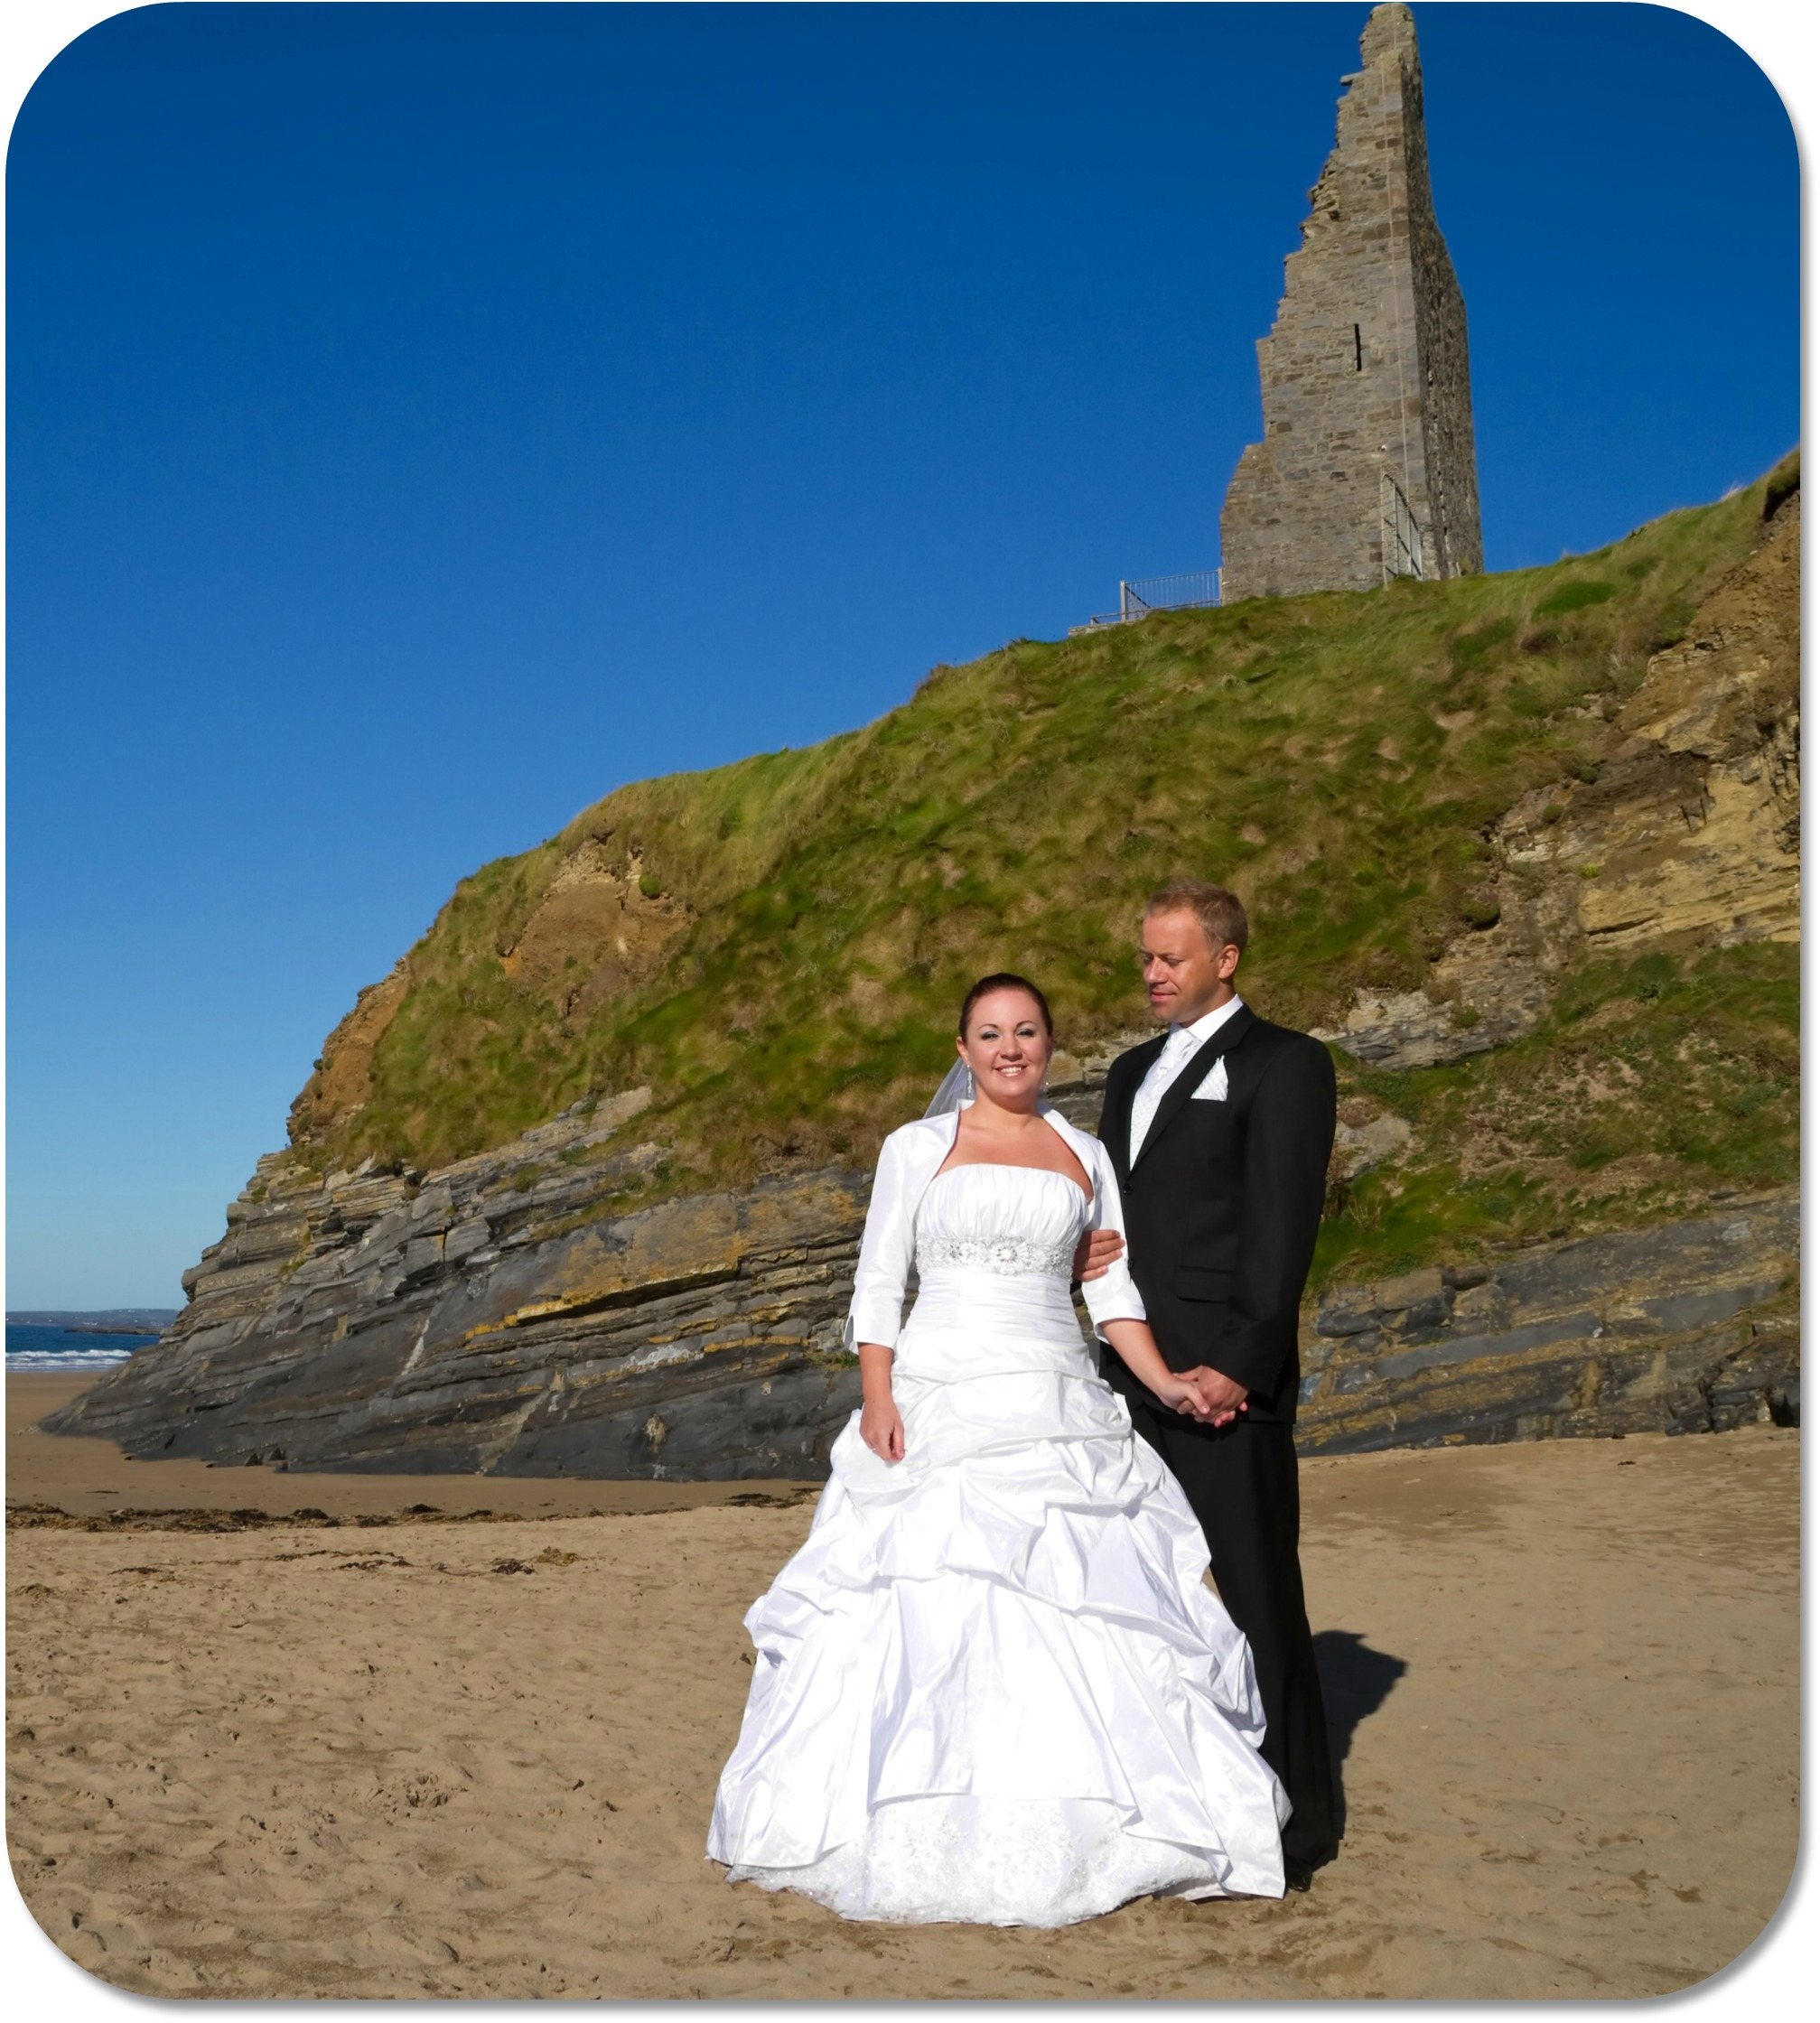 Irish Wedding Traditions - Bride and Groom on the Beach.